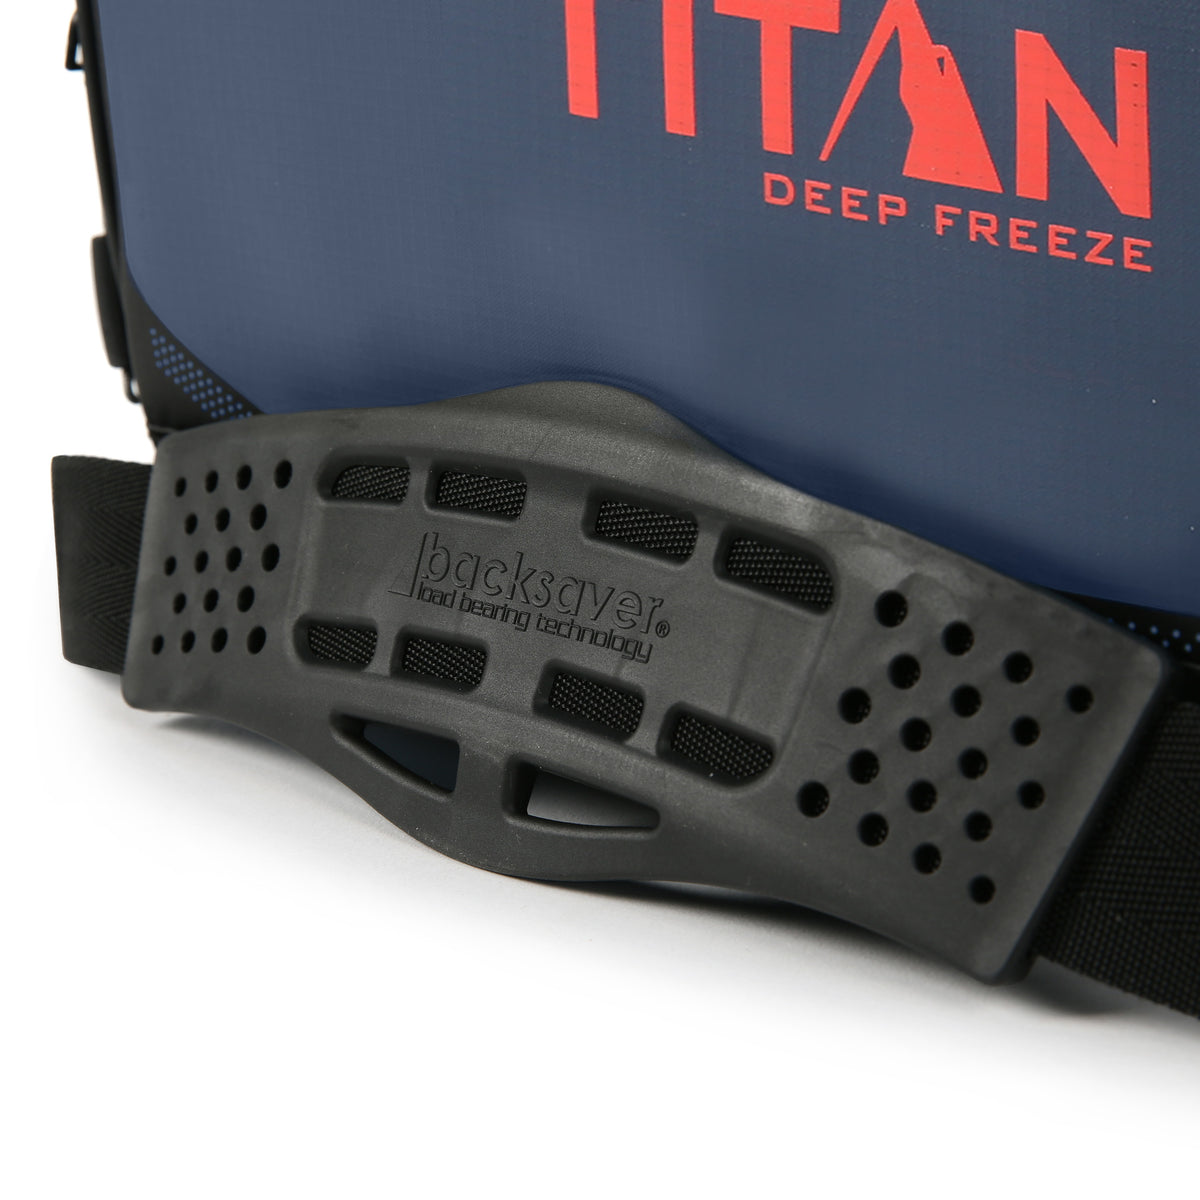 48 Can Titan Deep Freeze® Zipperless™ Cooler  - Navy - Backsaver anti-slip shoulder pad.